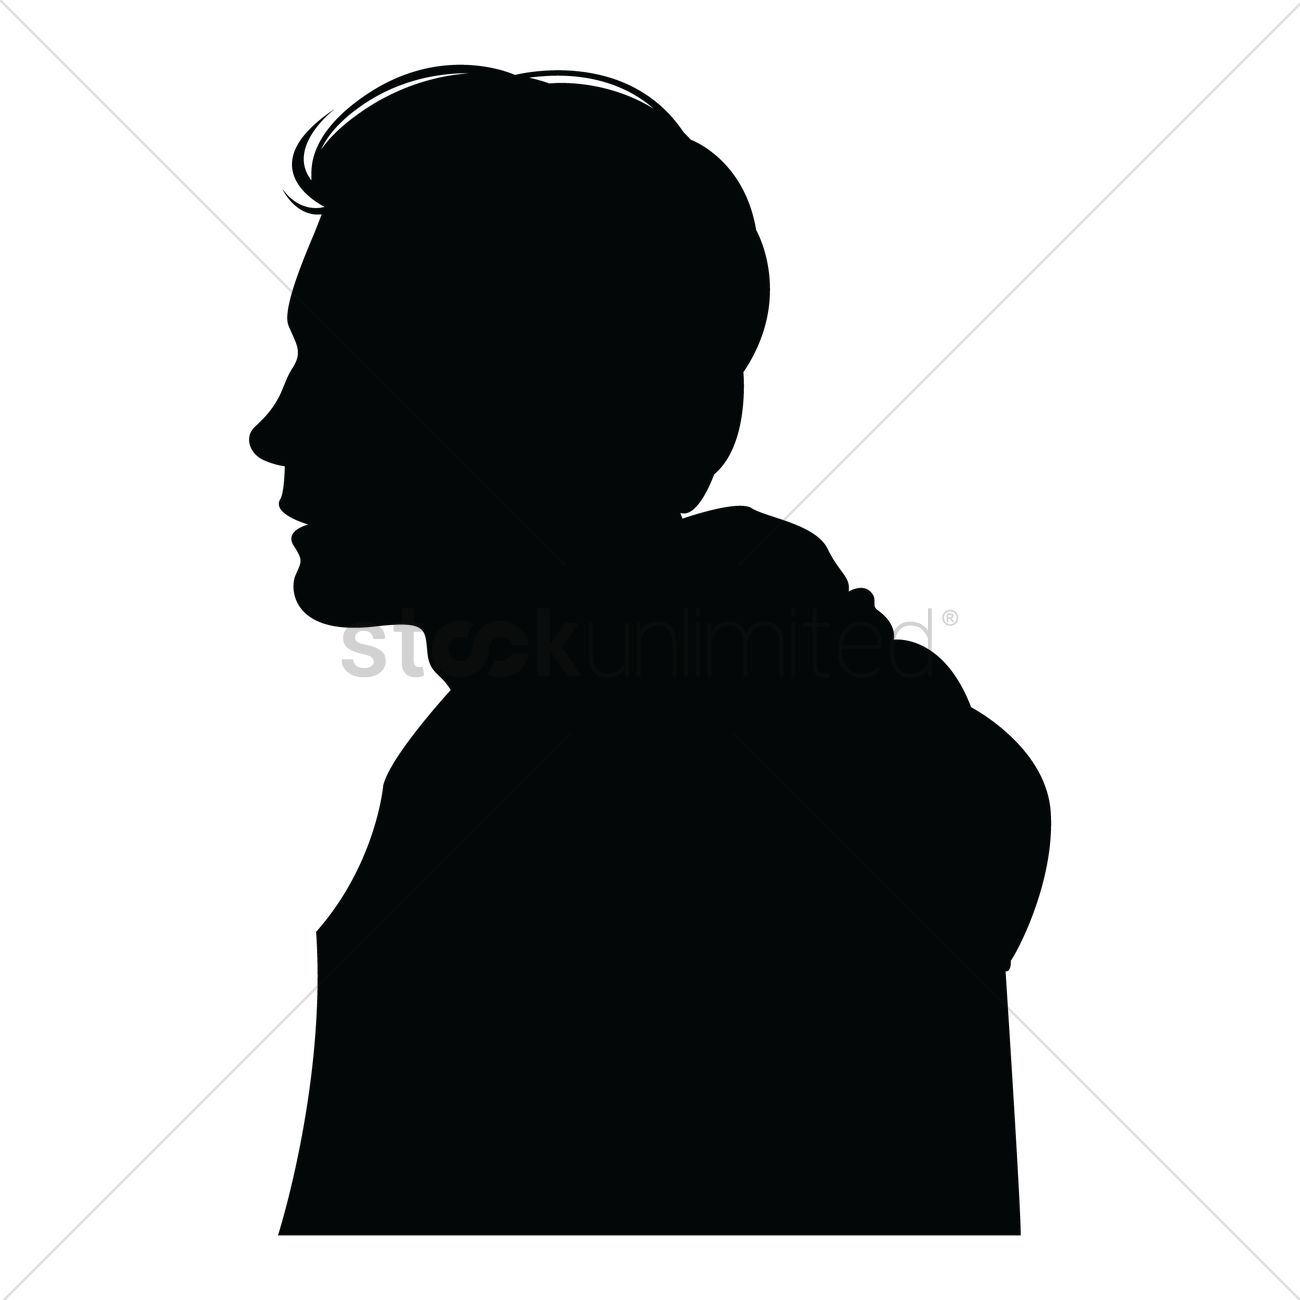 Side view of a silhouette man Vector Image - 1358867 | StockUnlimited